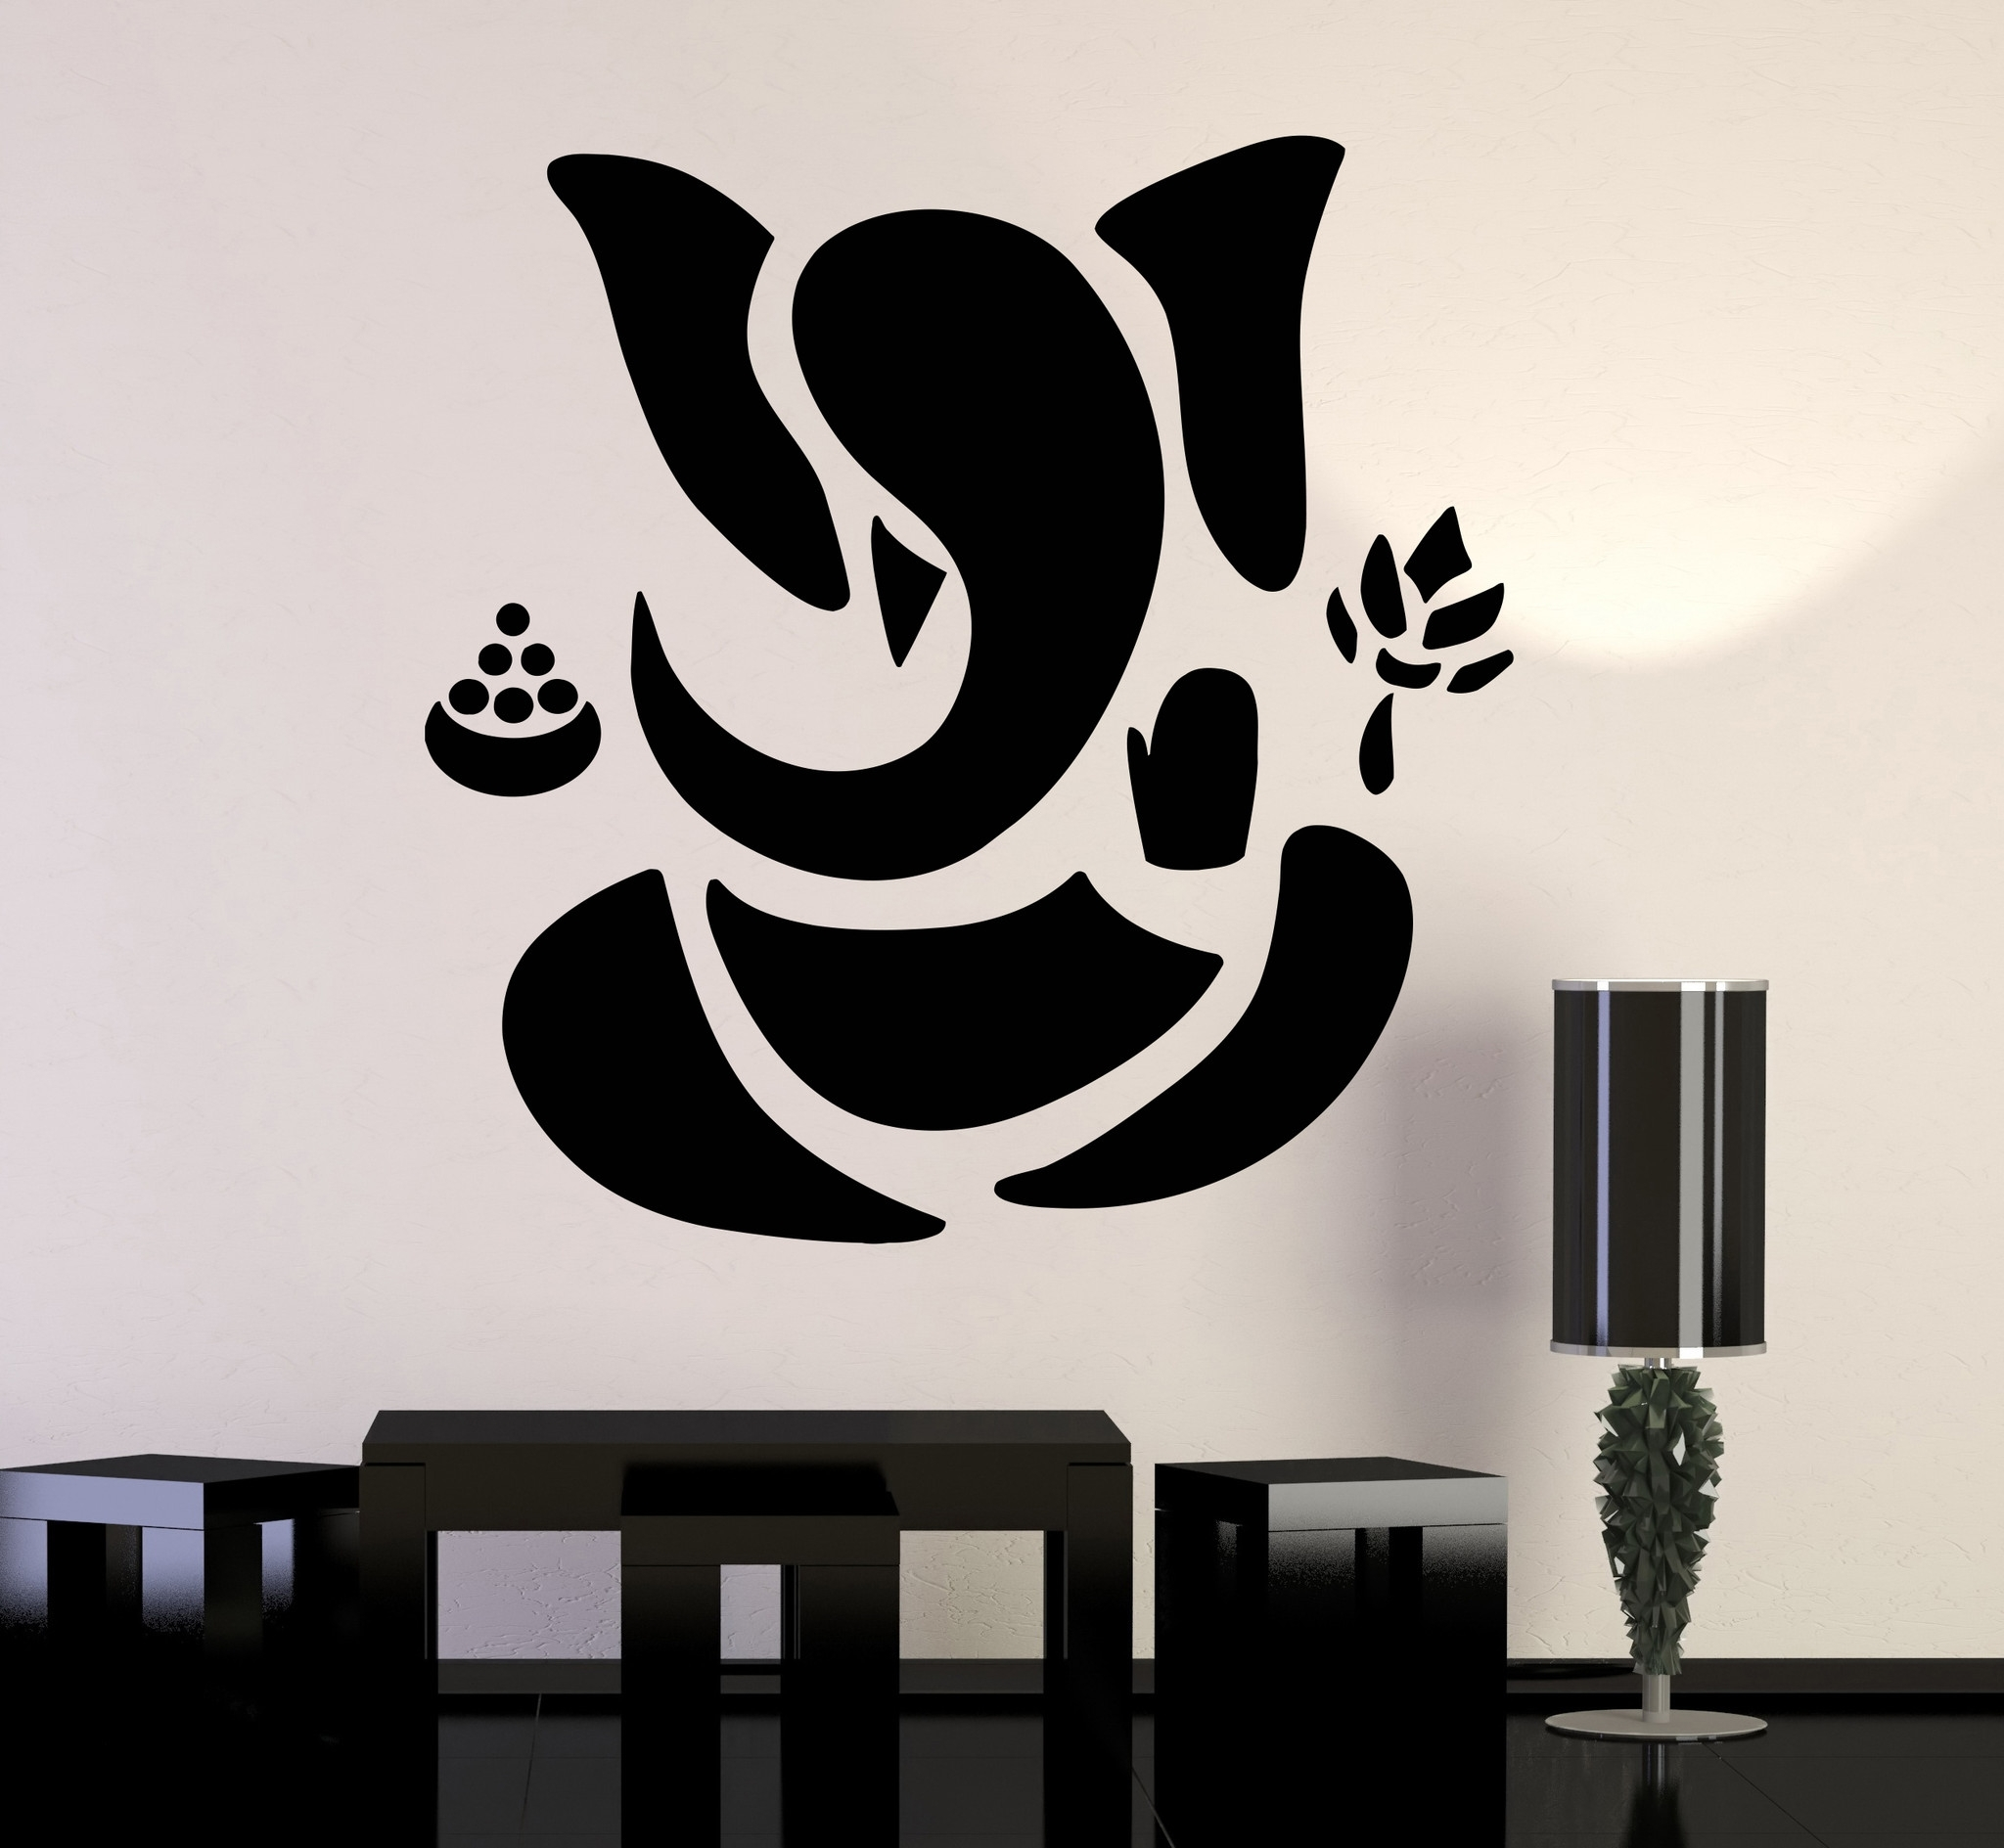 Abstract Art Wall Decal Pertaining To 2017 Vinyl Wall Decal Abstract Ganesha Hindu Hinduism Vedas God (View 4 of 15)